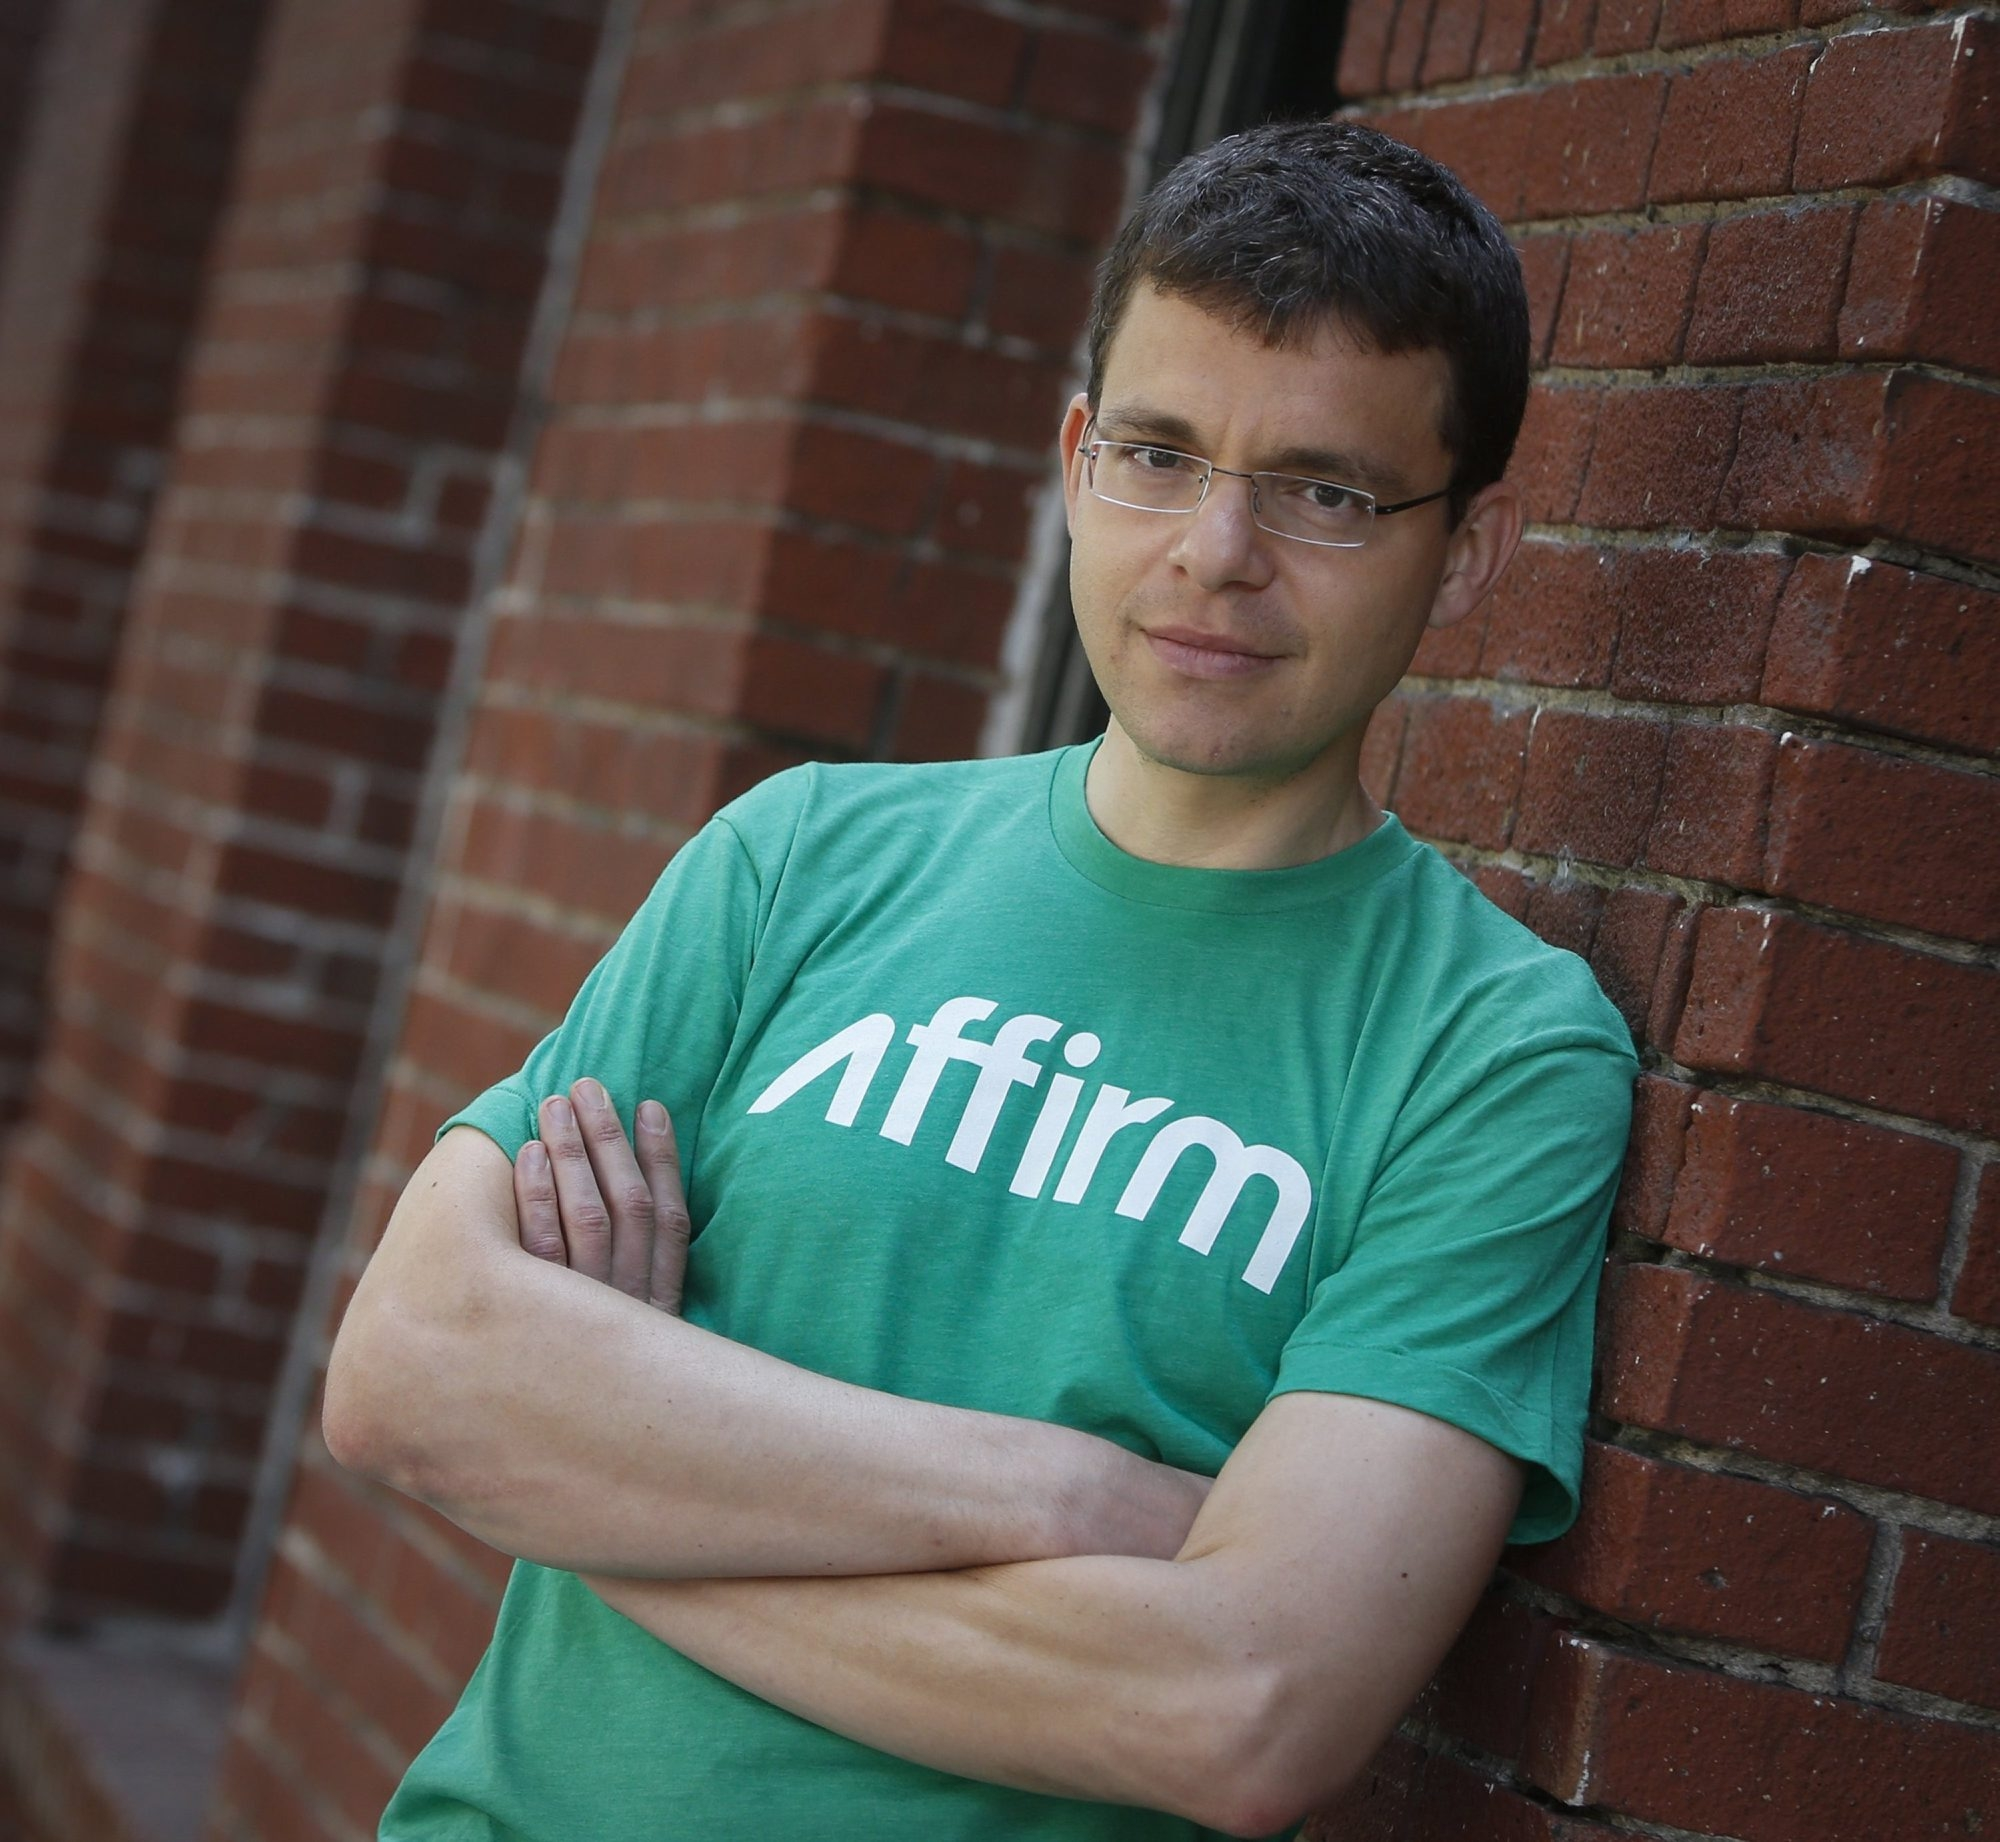 Max Levchin, a Ukrainian computer scientist, is the co-founder of PayPal and is the CEO of Affirm, a financial services company offering consumer credit at the point of sale, and chairman of Glow, a women's reproductive health app.